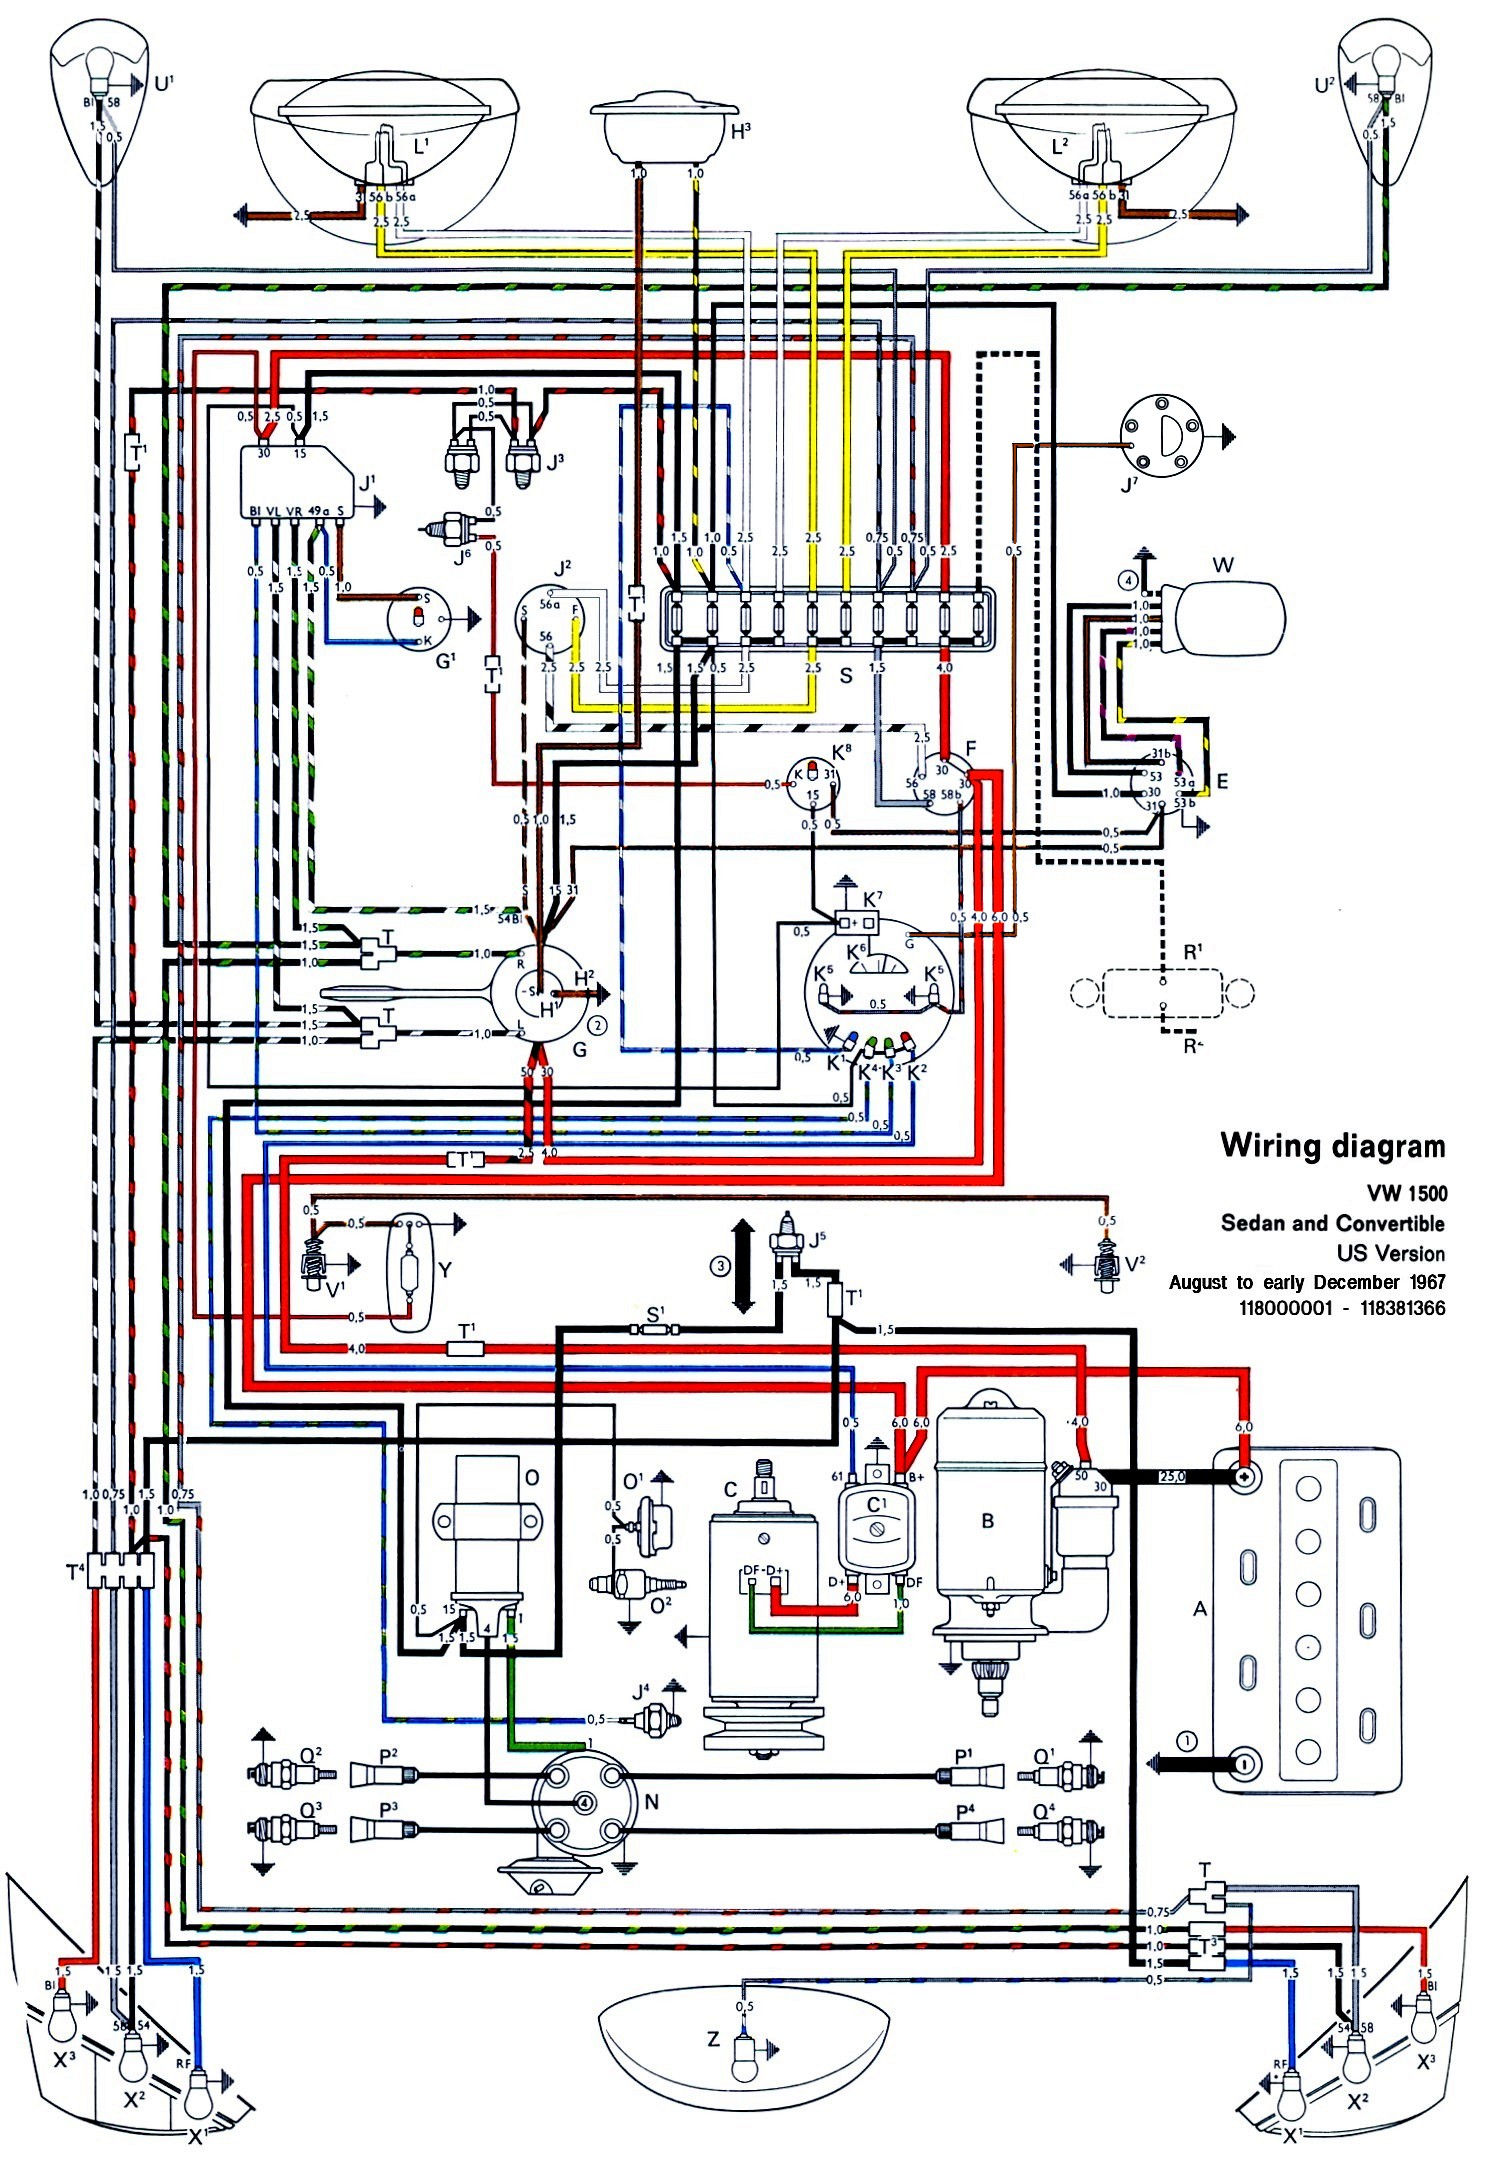 Fuse Diagram For 1973 Vw Super Beetle - Bryant Furnace Thermostat Wiring  for Wiring Diagram SchematicsWiring Diagram Schematics